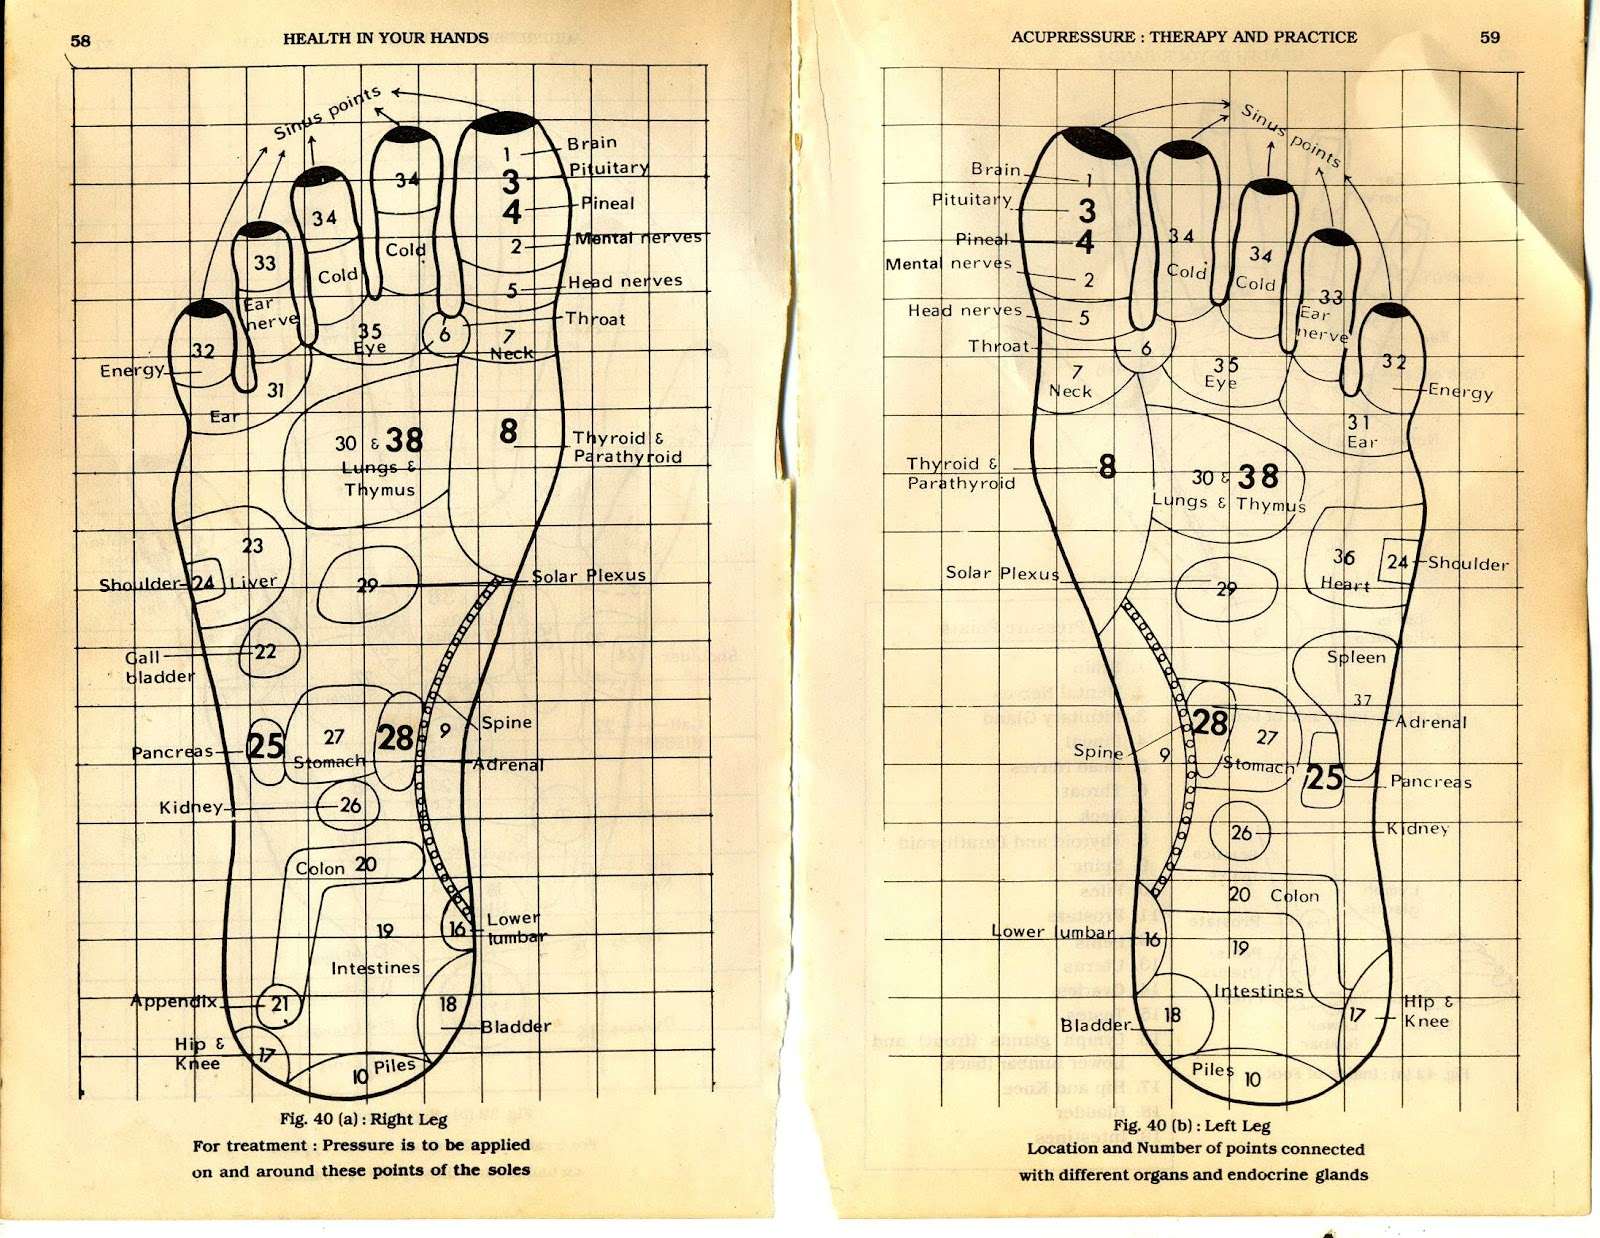 ACUPRESSURE: Below you will find commonly used acupressure ...